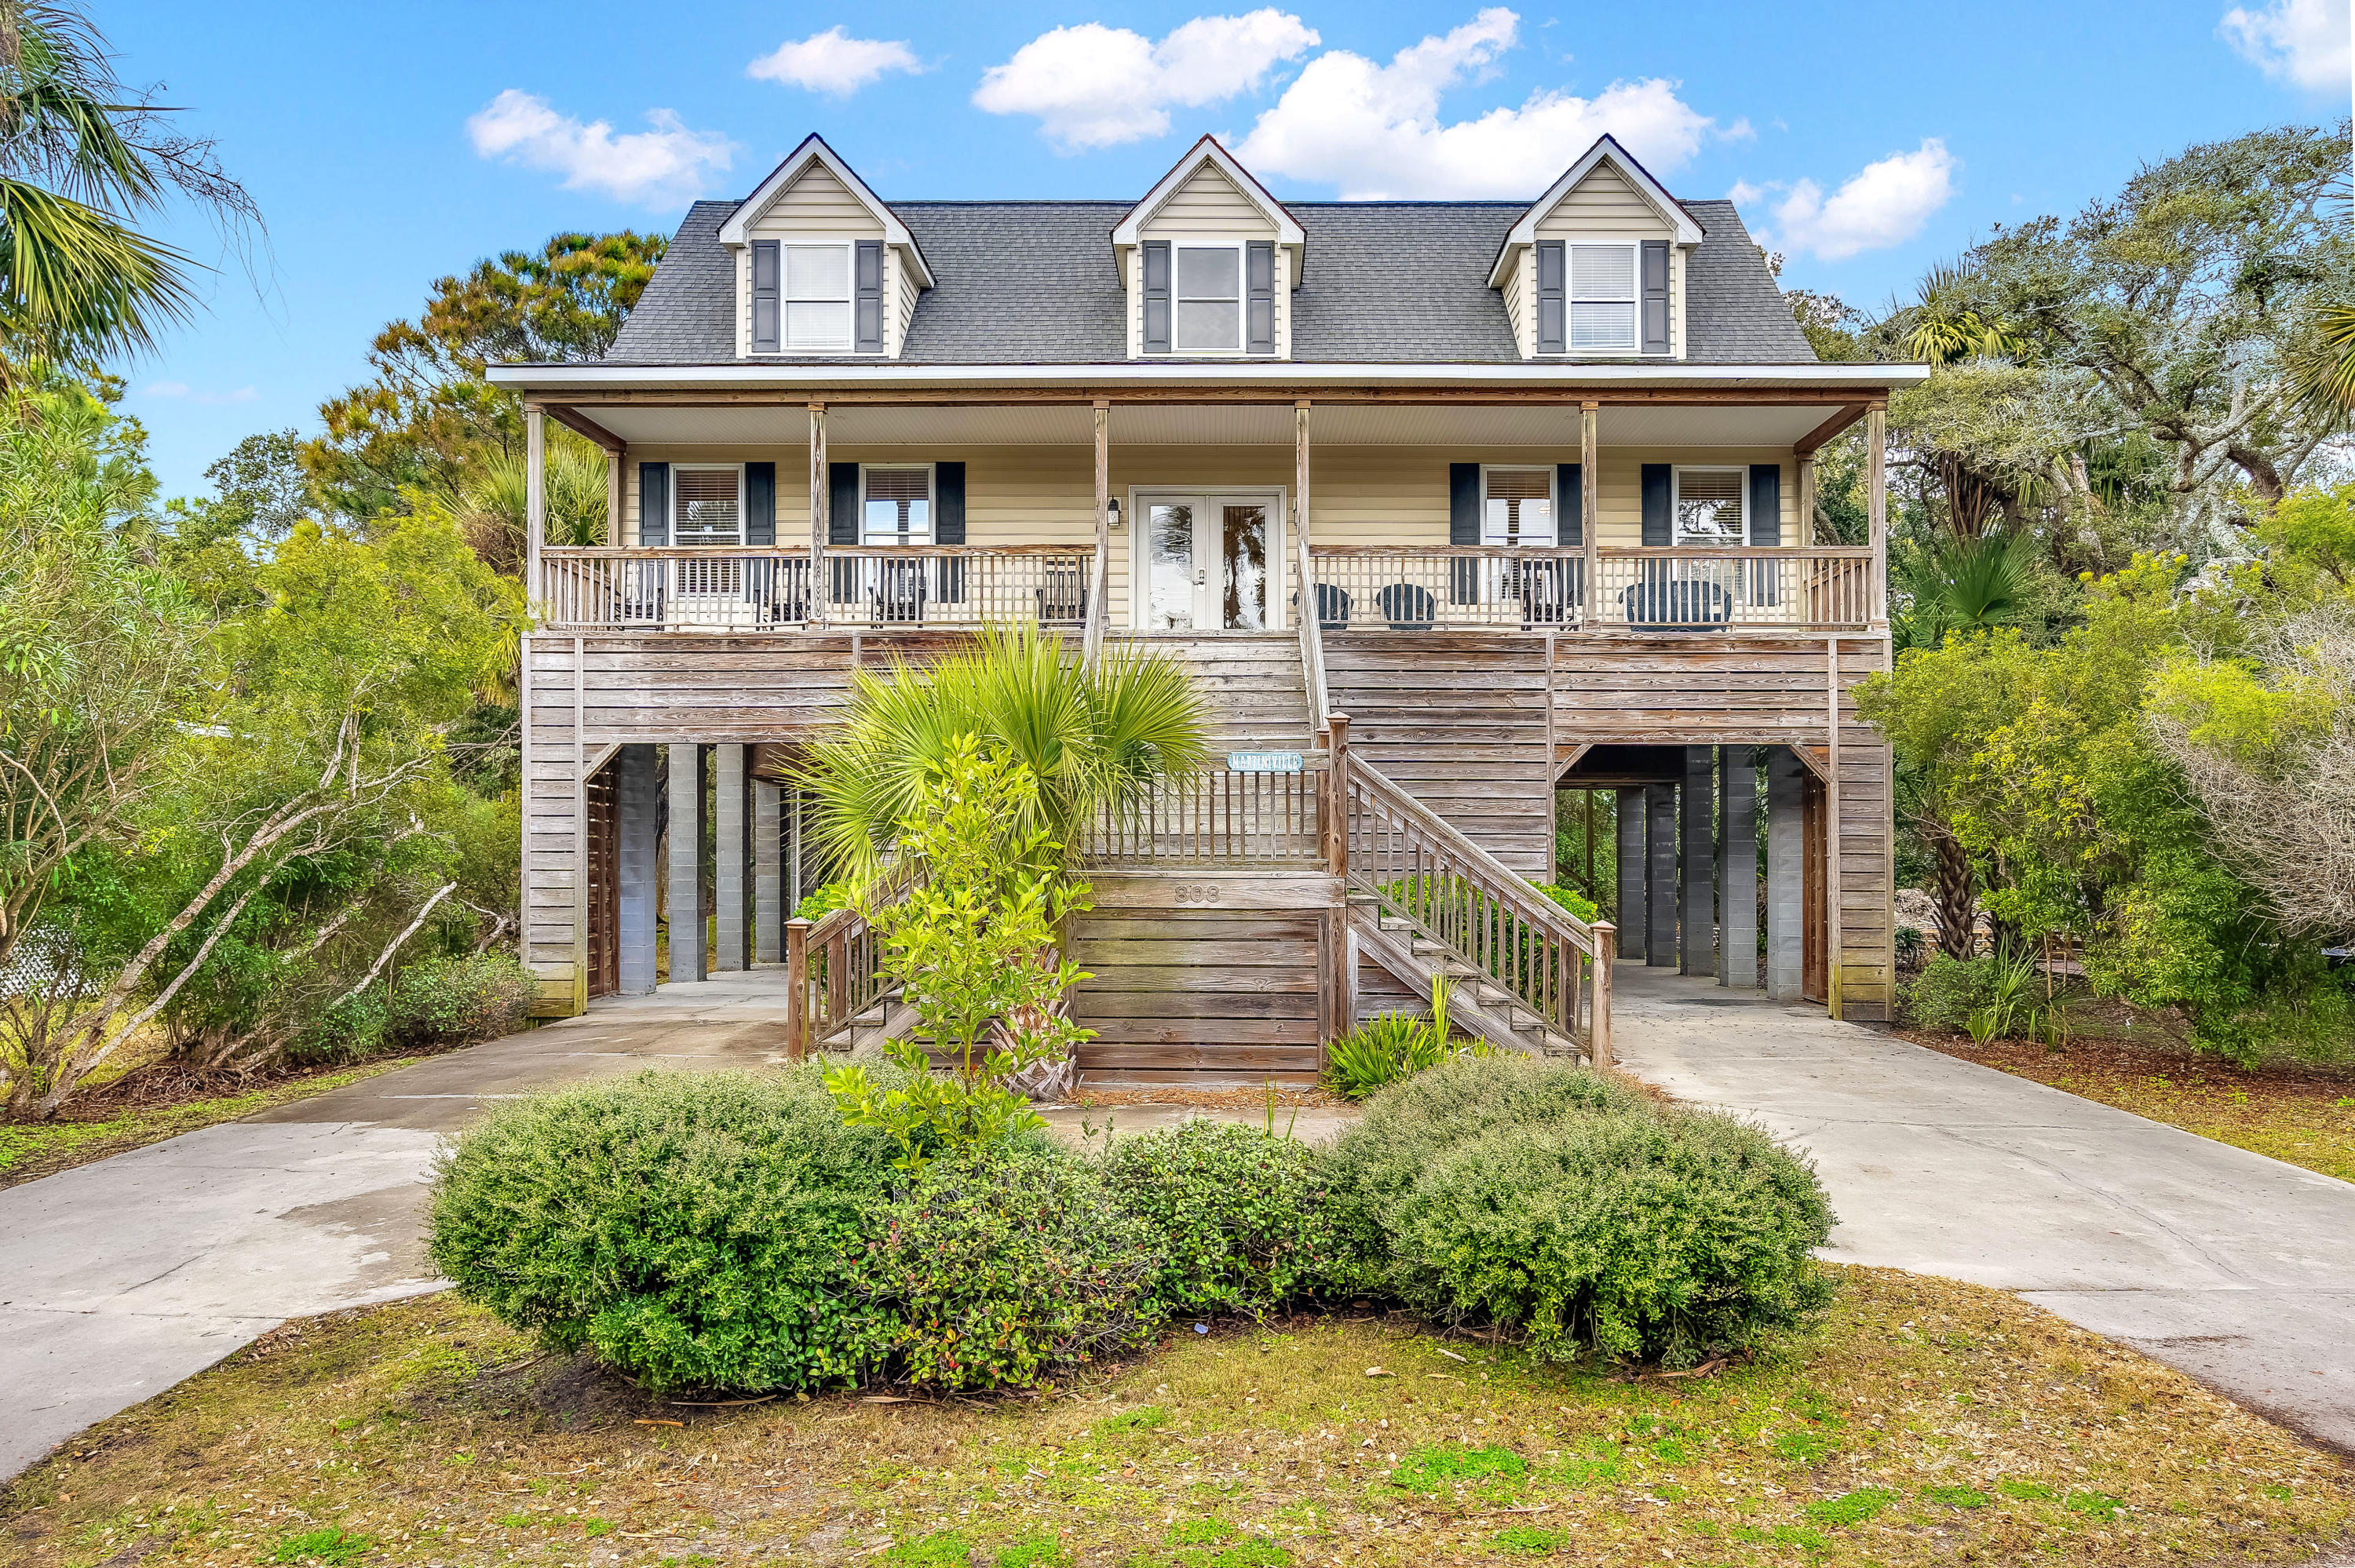 Folly Beach Homes For Sale - 808 Ashley, Folly Beach, SC - 6